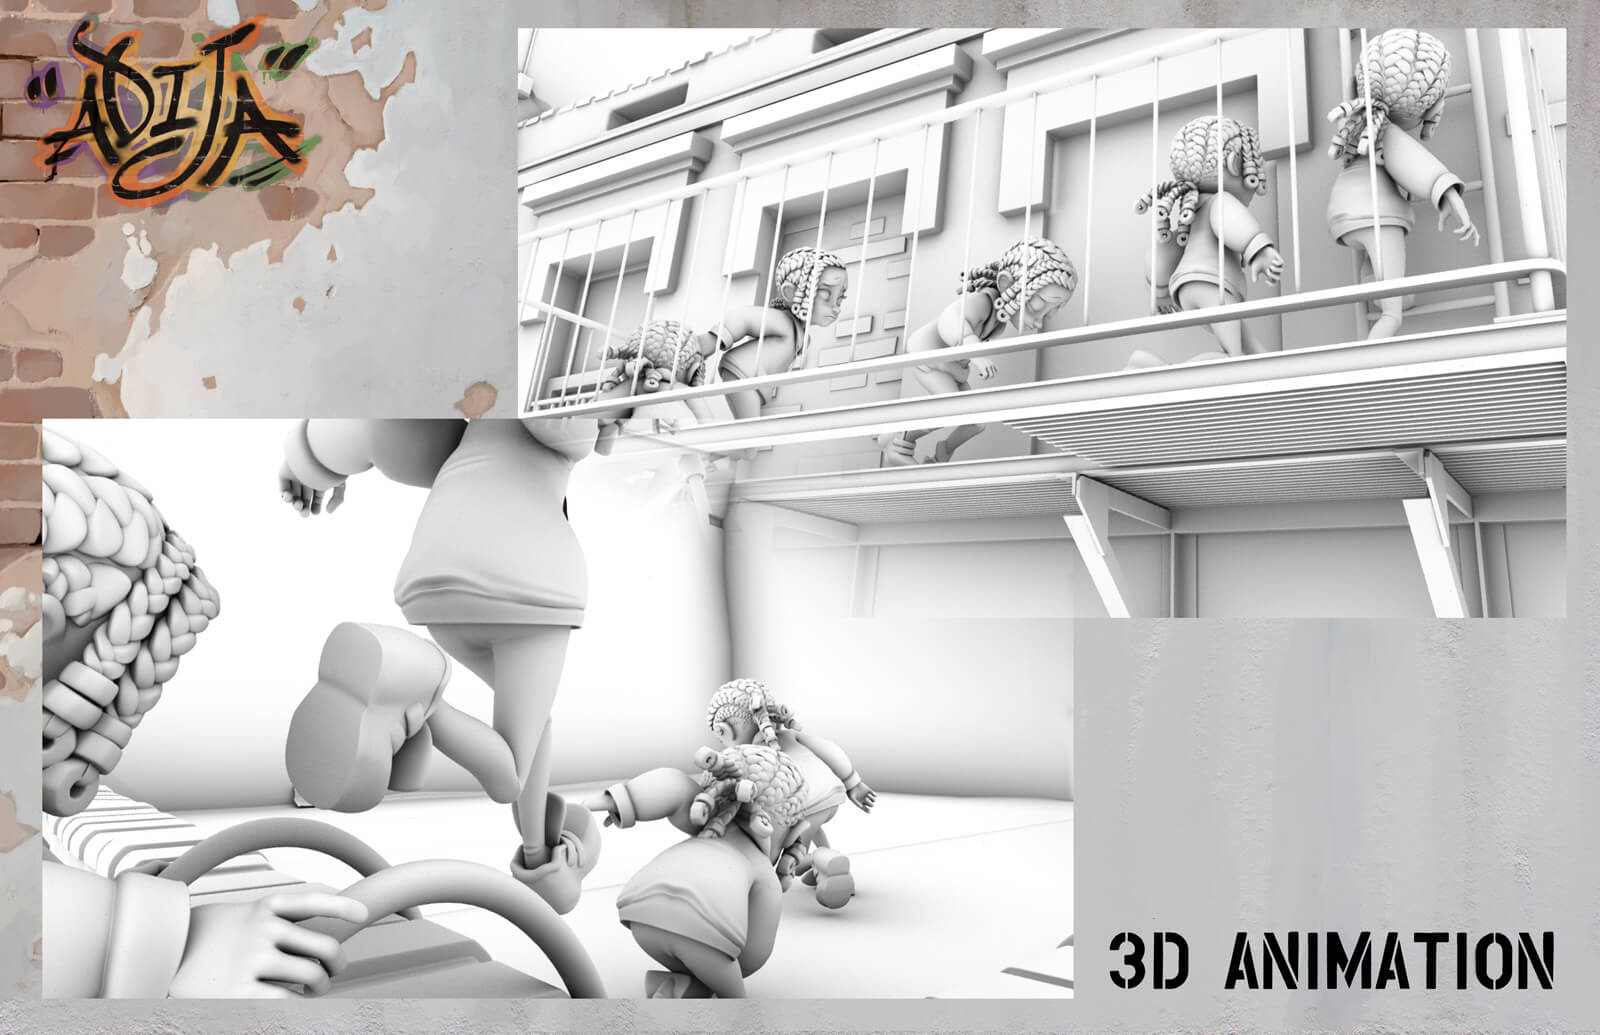 3D Animation sheet depicting an uncolored model of a young girl running up a fire escape of a building